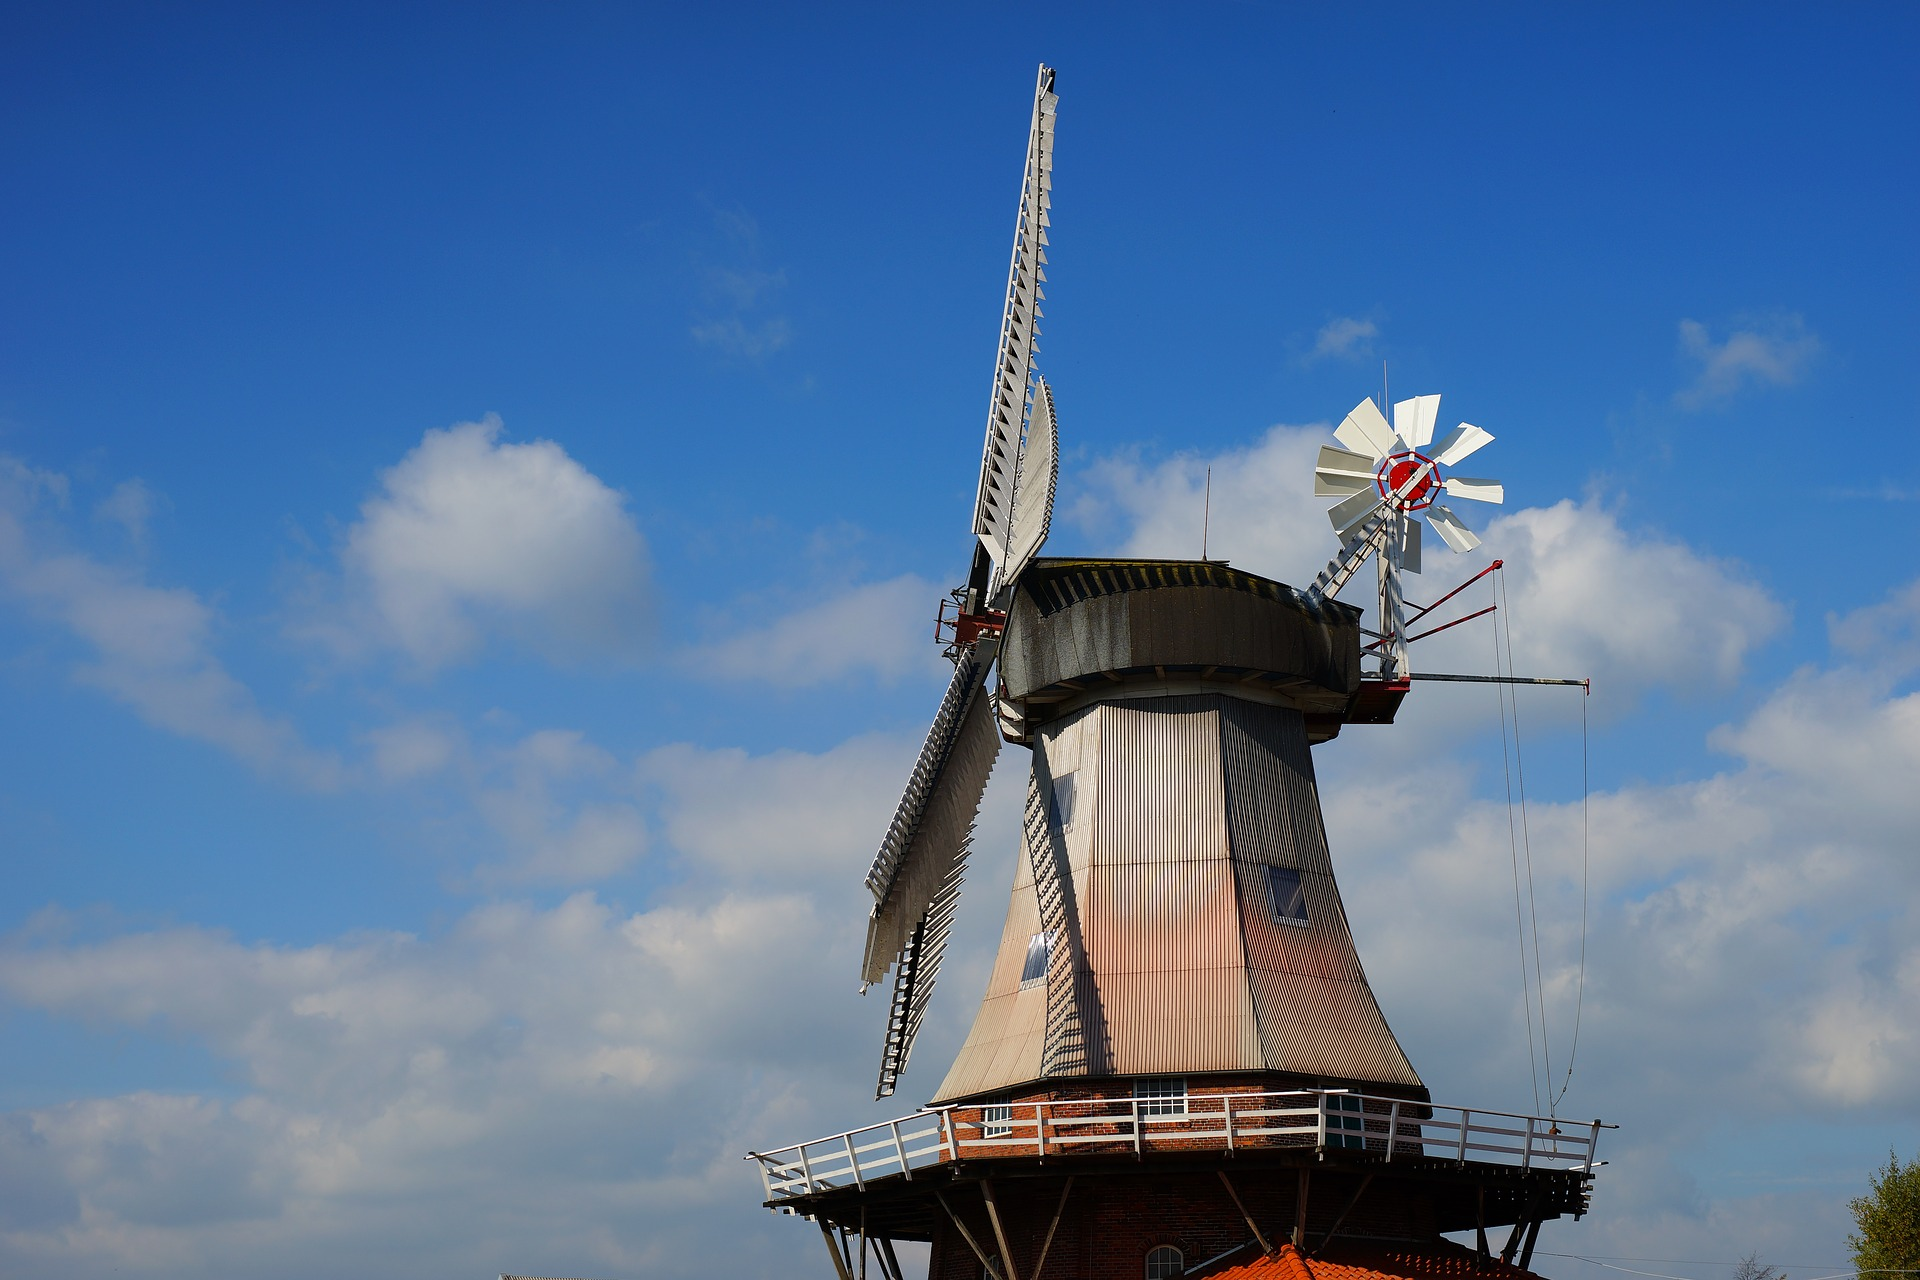 The Pros And Cons Of Wind Power Cost Effective Environment Addition Plant Schematic Diagram In Homemade Dutch Windmill